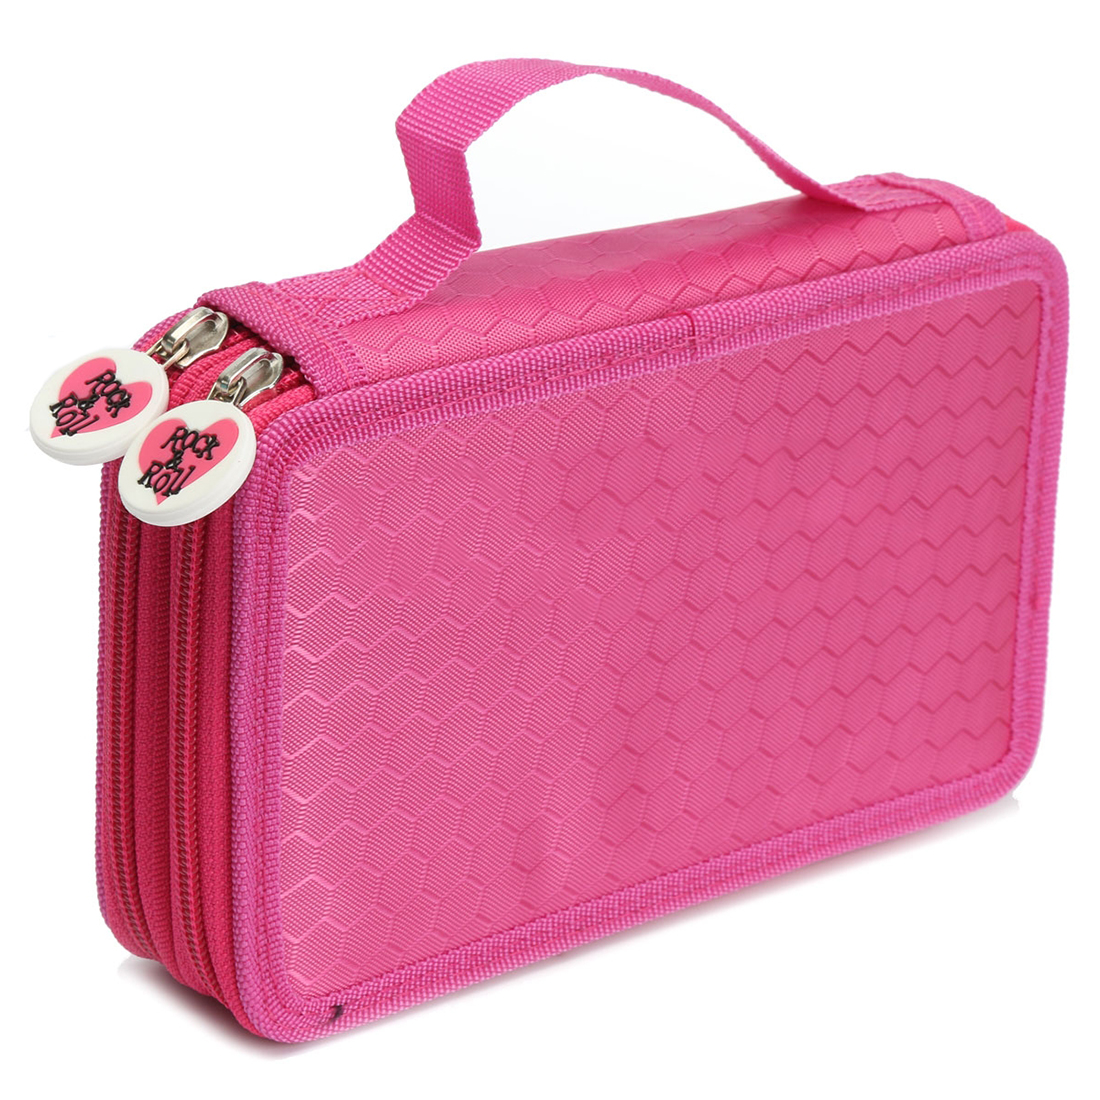 1pcs 32 holes High Capacity Holder Stationary Pencil Case Pen Box Storage Bag New, 2 Layers,6color big capacity high quality canvas shark double layers pen pencil holder makeup case bag for school student with combination coded lock